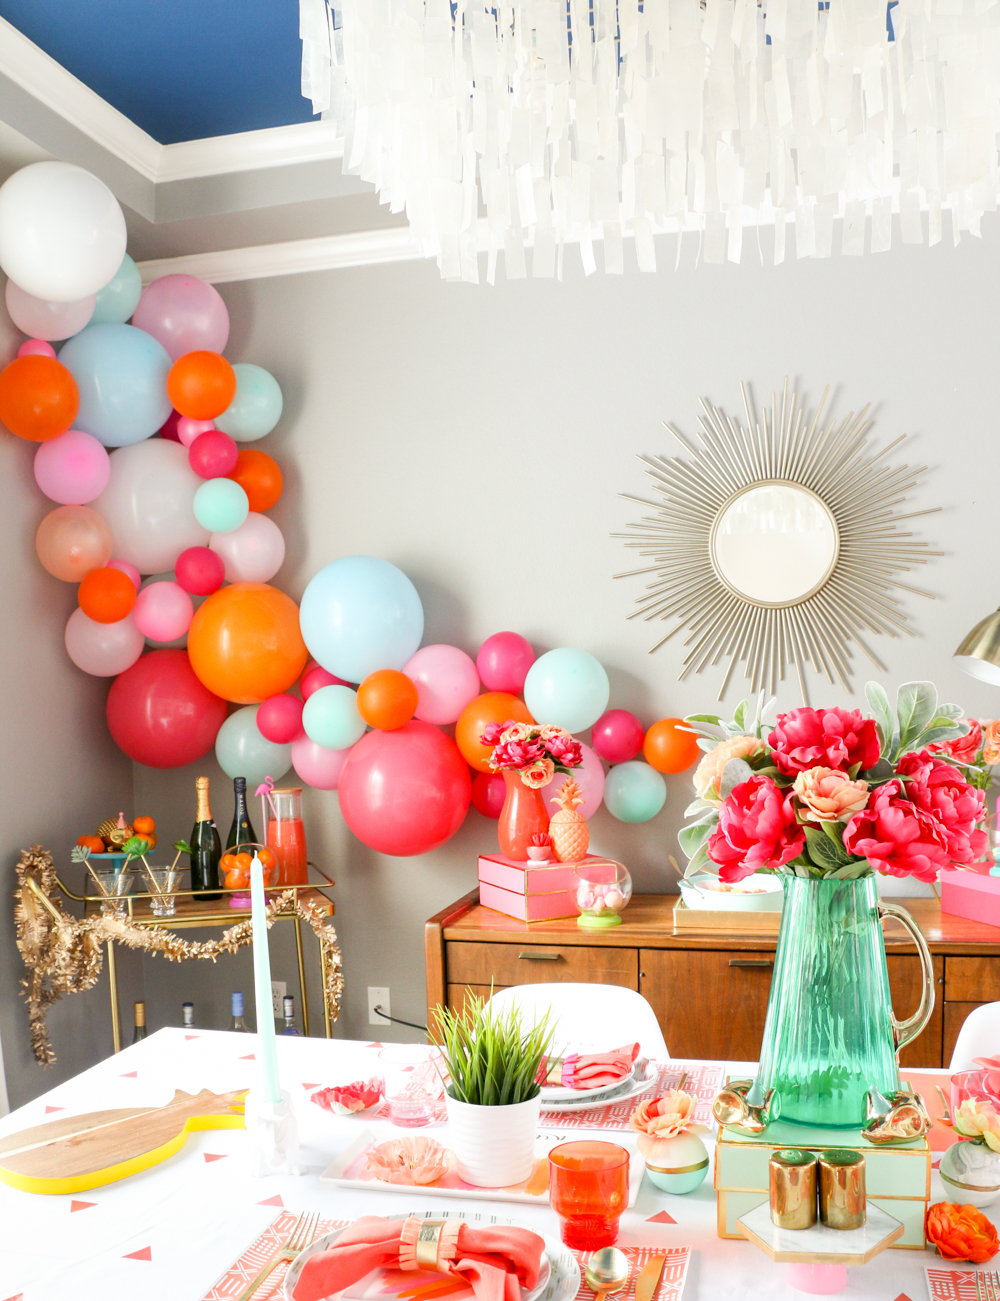 A kailo chic life style it mother 39 s day brunch for B day decoration ideas